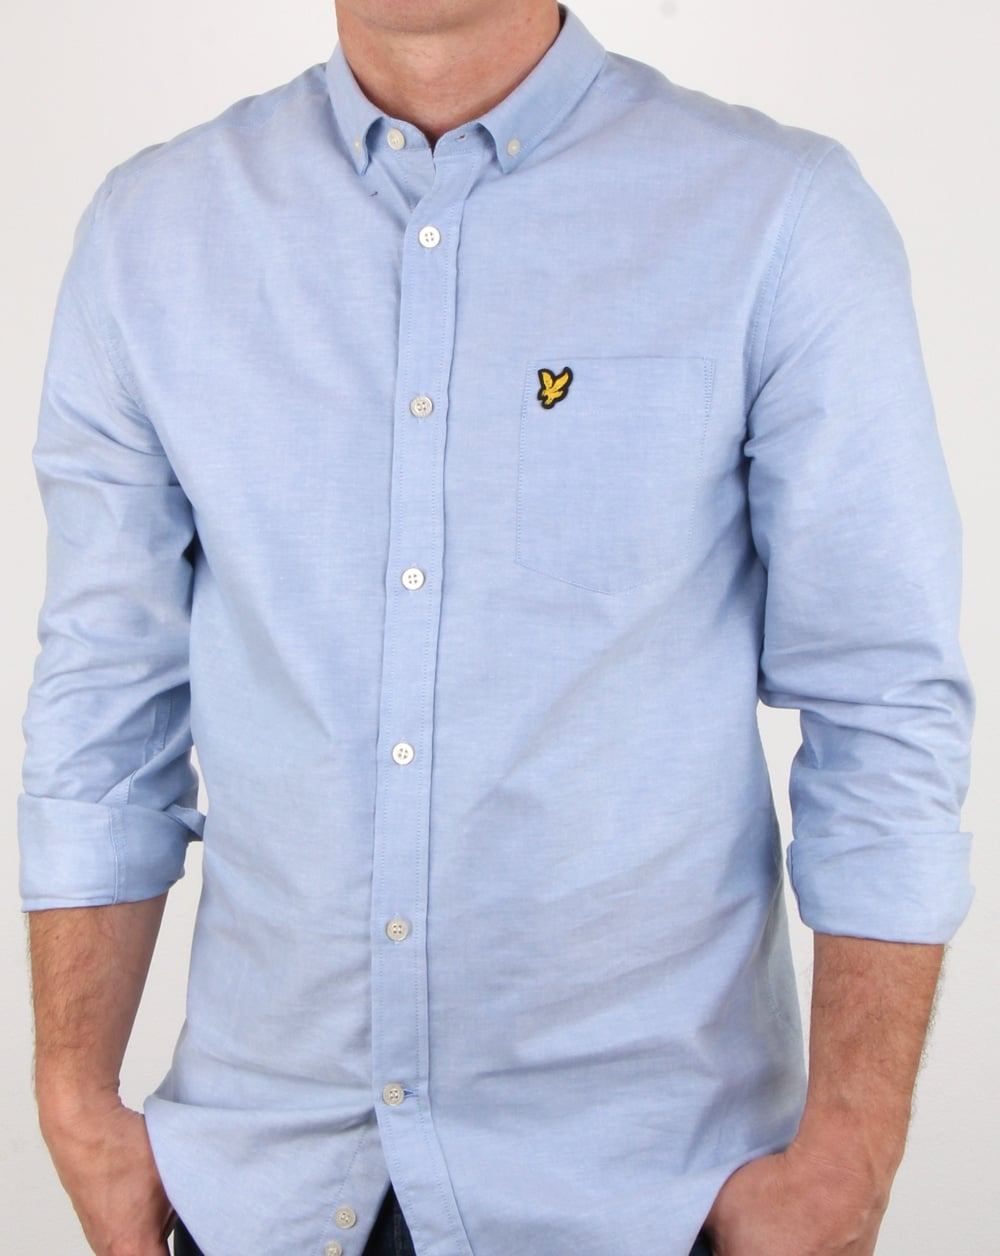 Lyle and scott oxford shirt riviera oxford long sleeve for Lyle and scott shirt sale